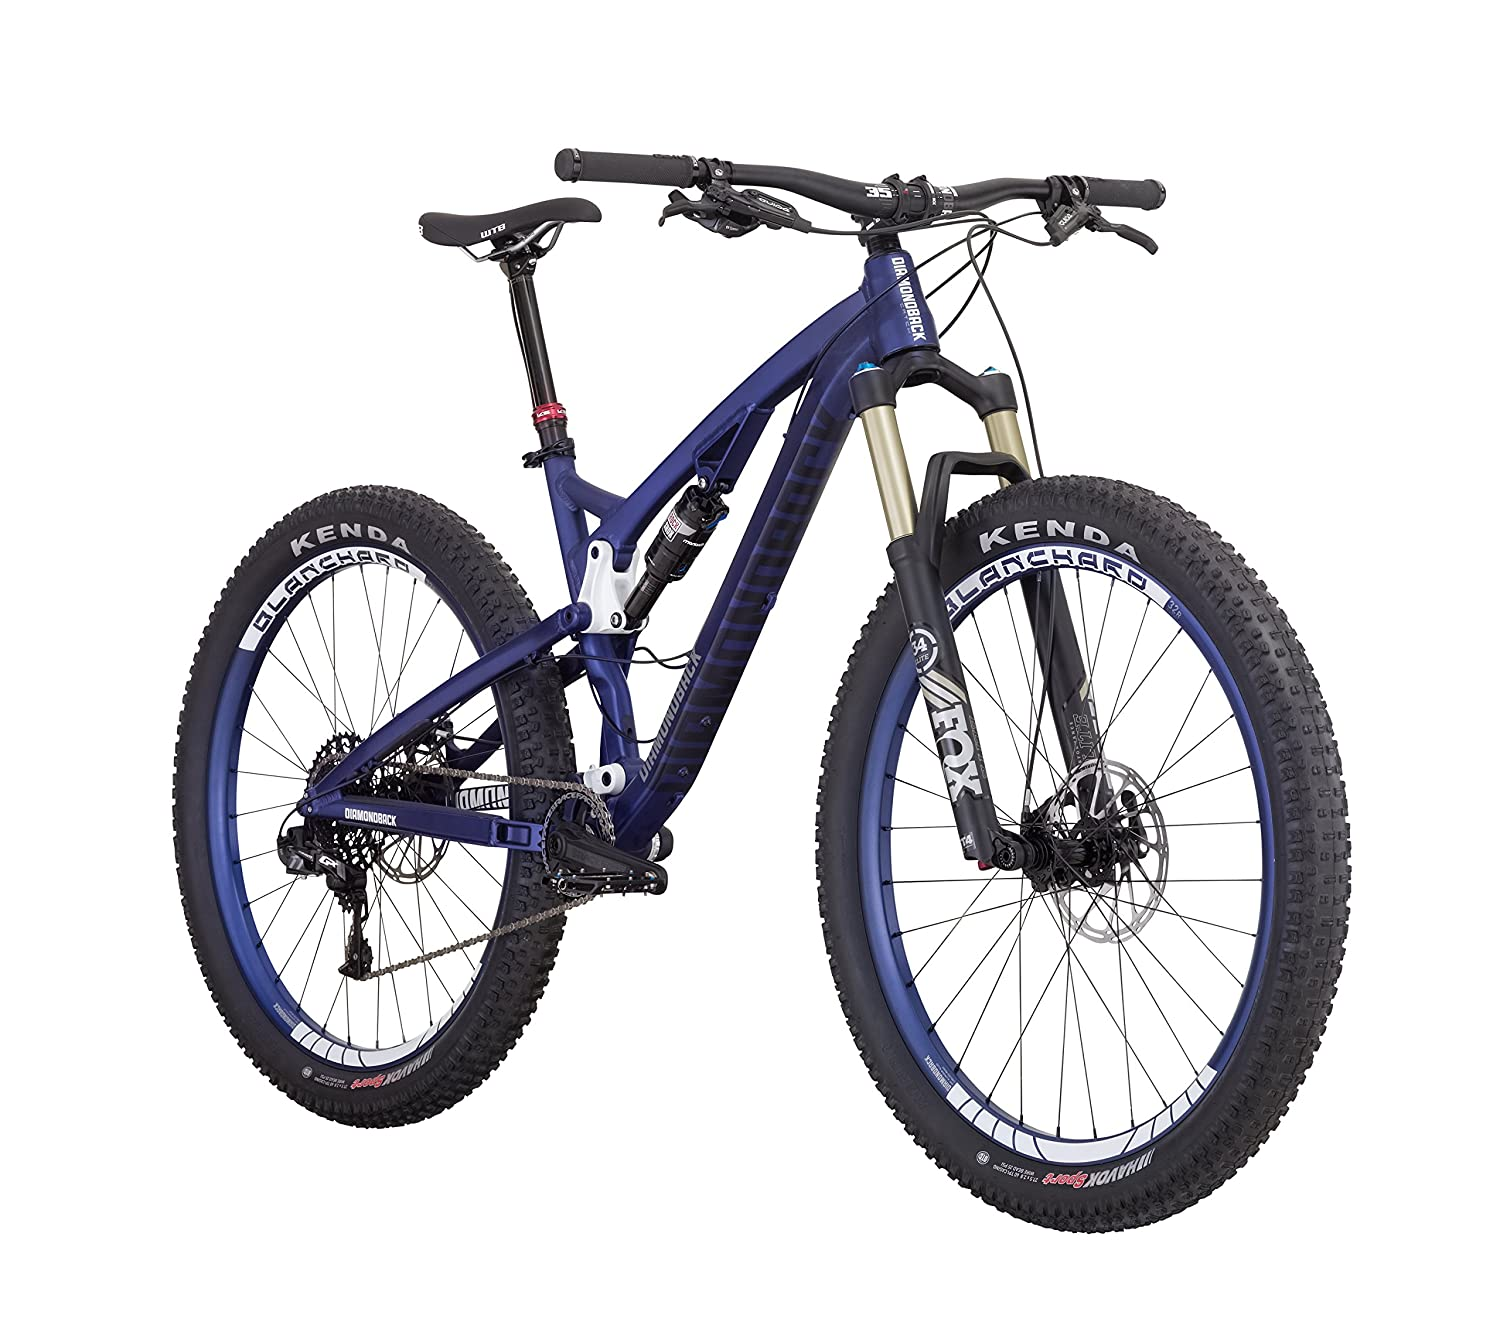 a877f406e9e Amazon.com : Diamondback Bicycles Catch 2 Complete Ready Ride Full  Suspension Mountain Bicycle, 19